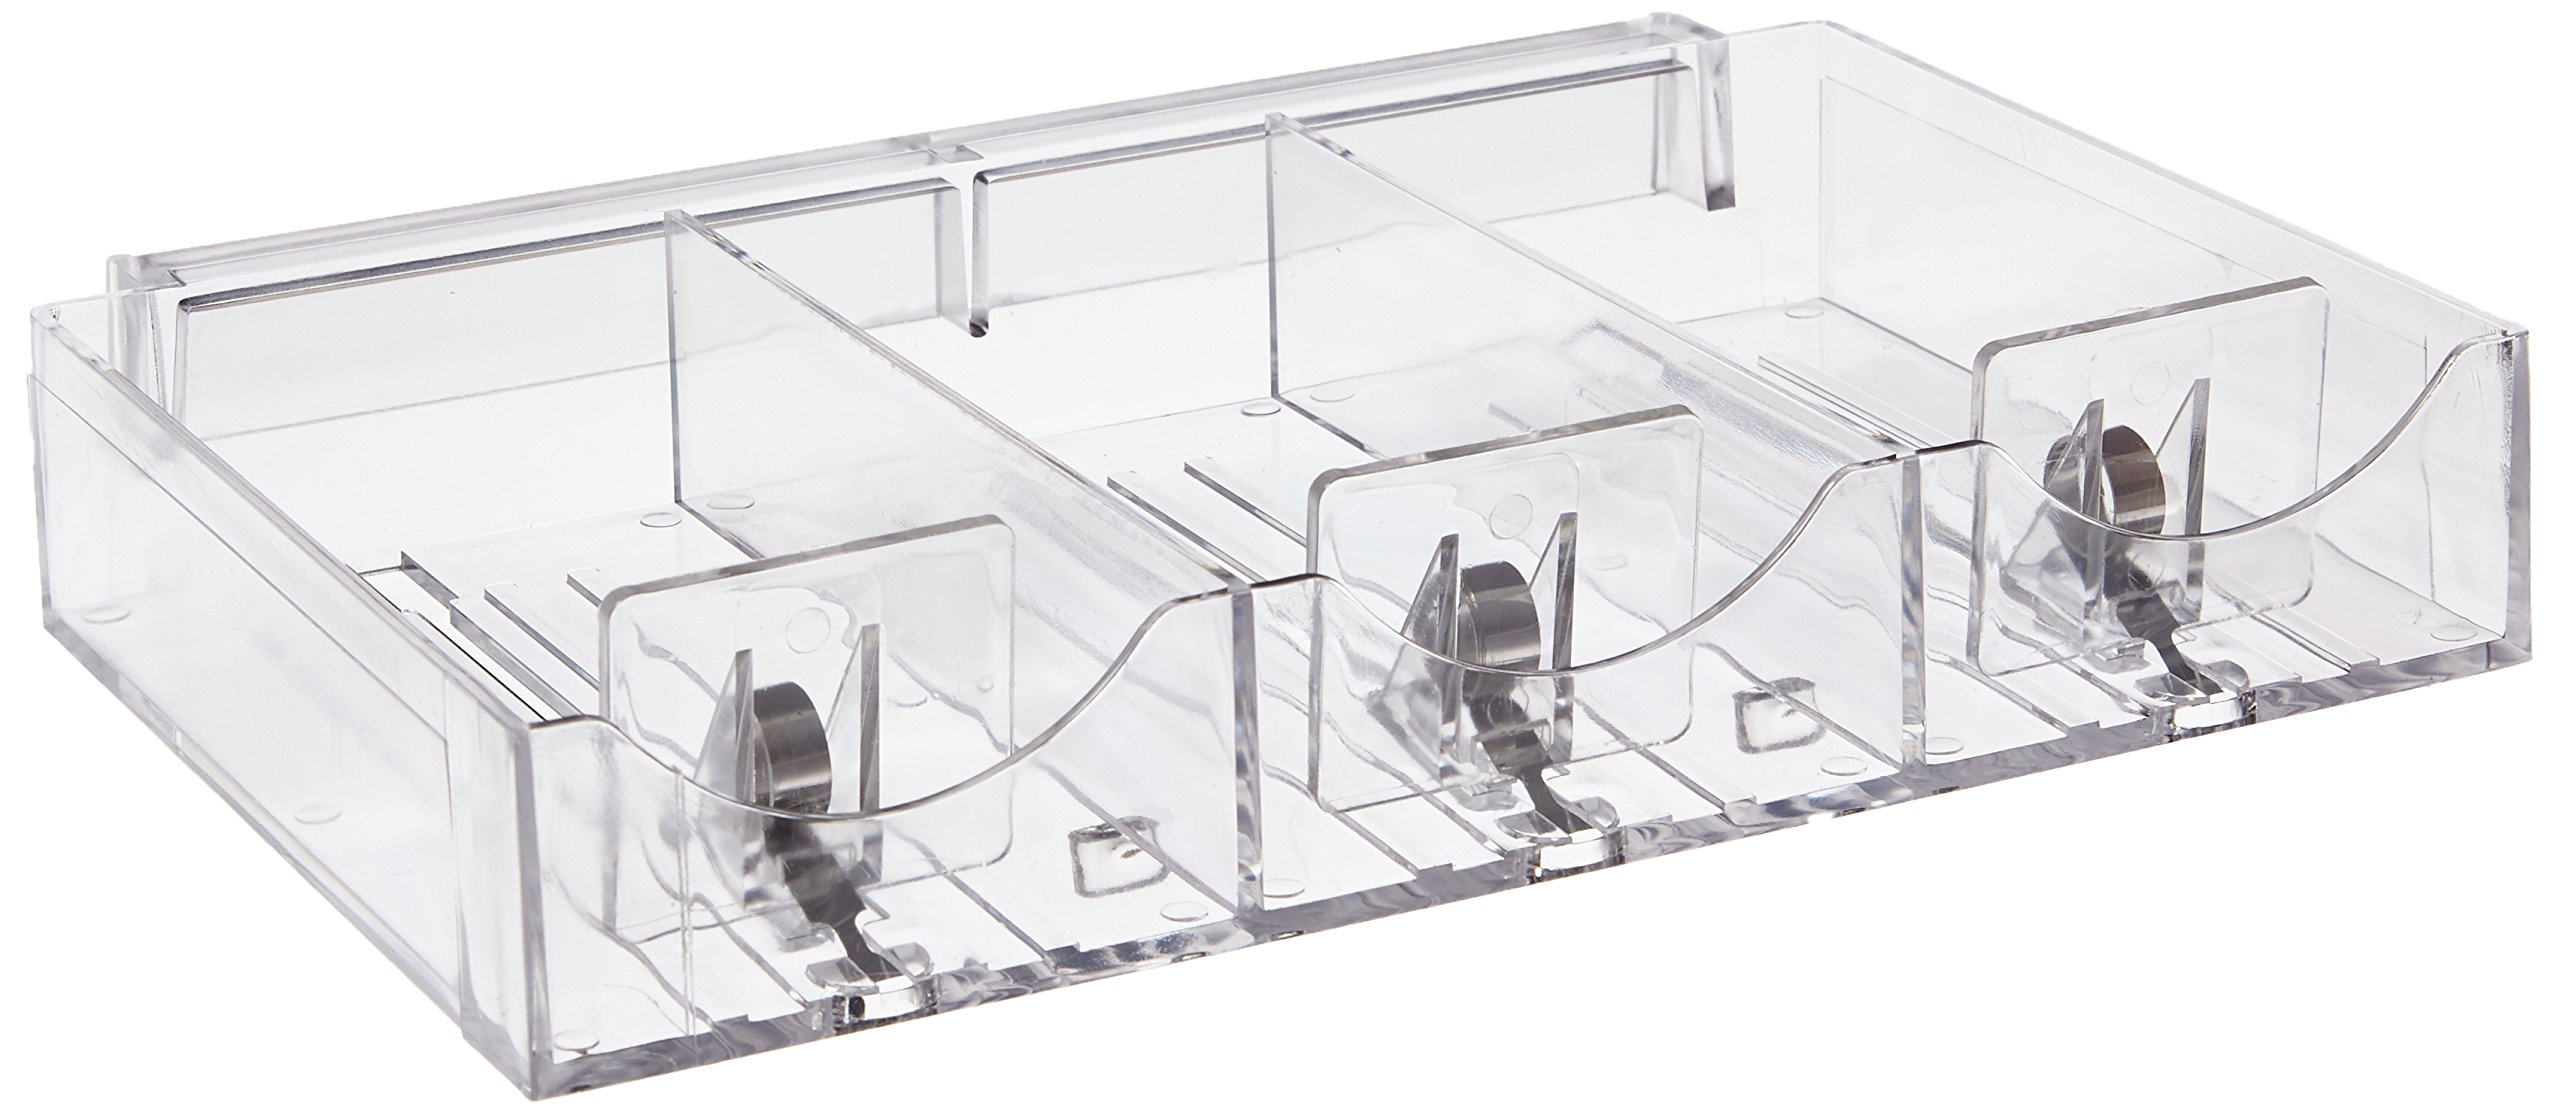 Azar Displays 225504 9.125'' W x 5.8125'' D x 1.5'' H 3-Compartment Pusher Tray (2 Pack)